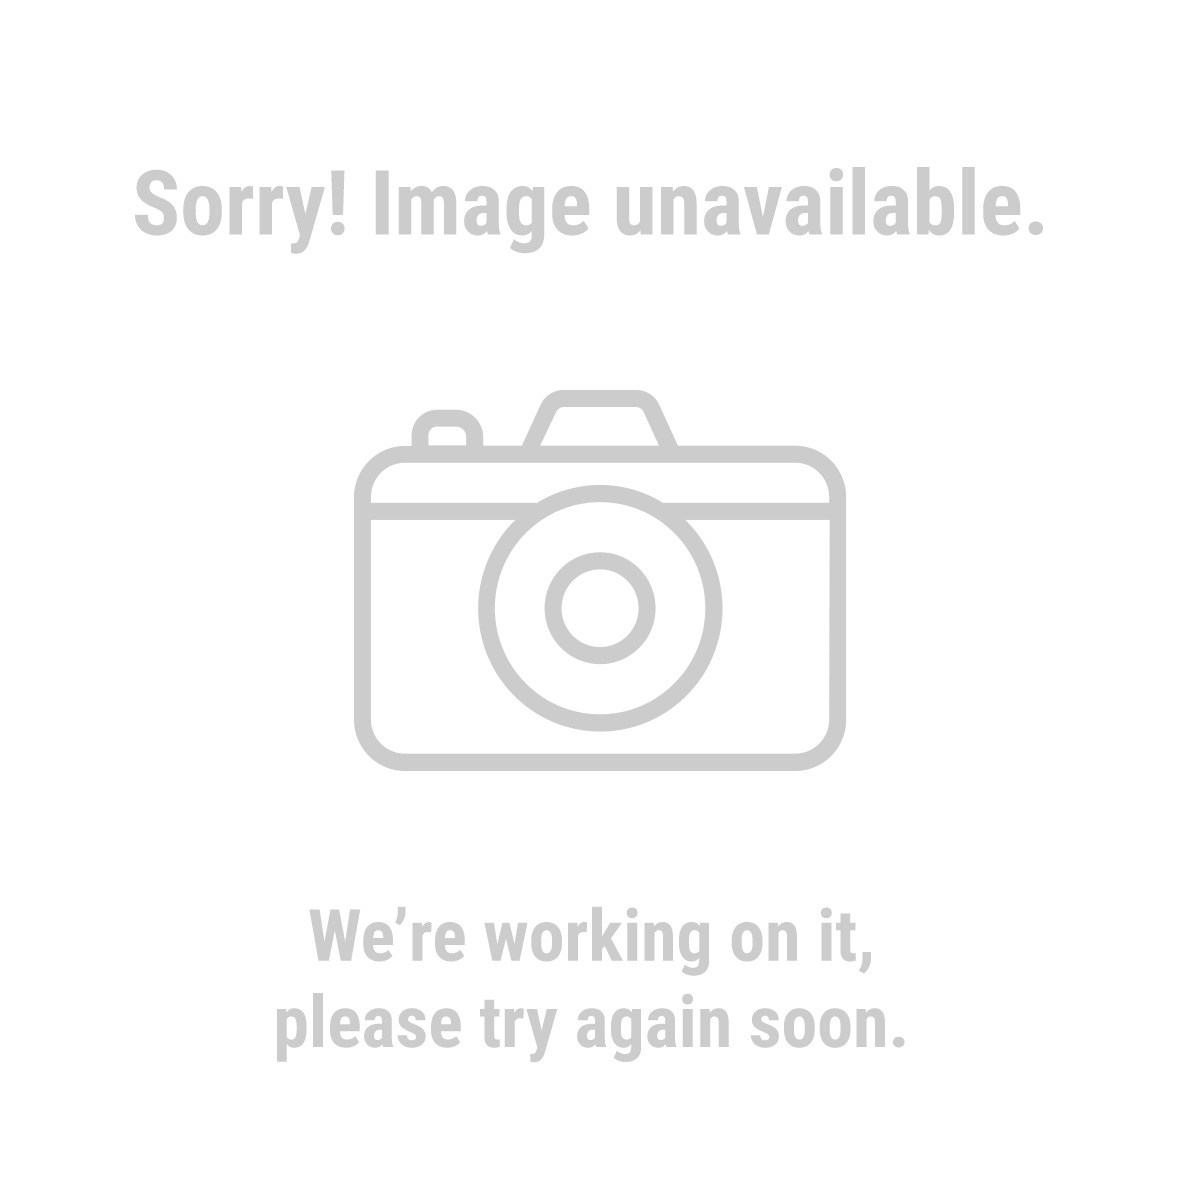 Bunker Hill Security 62367 Wireless Color Security Camera with Night Vision